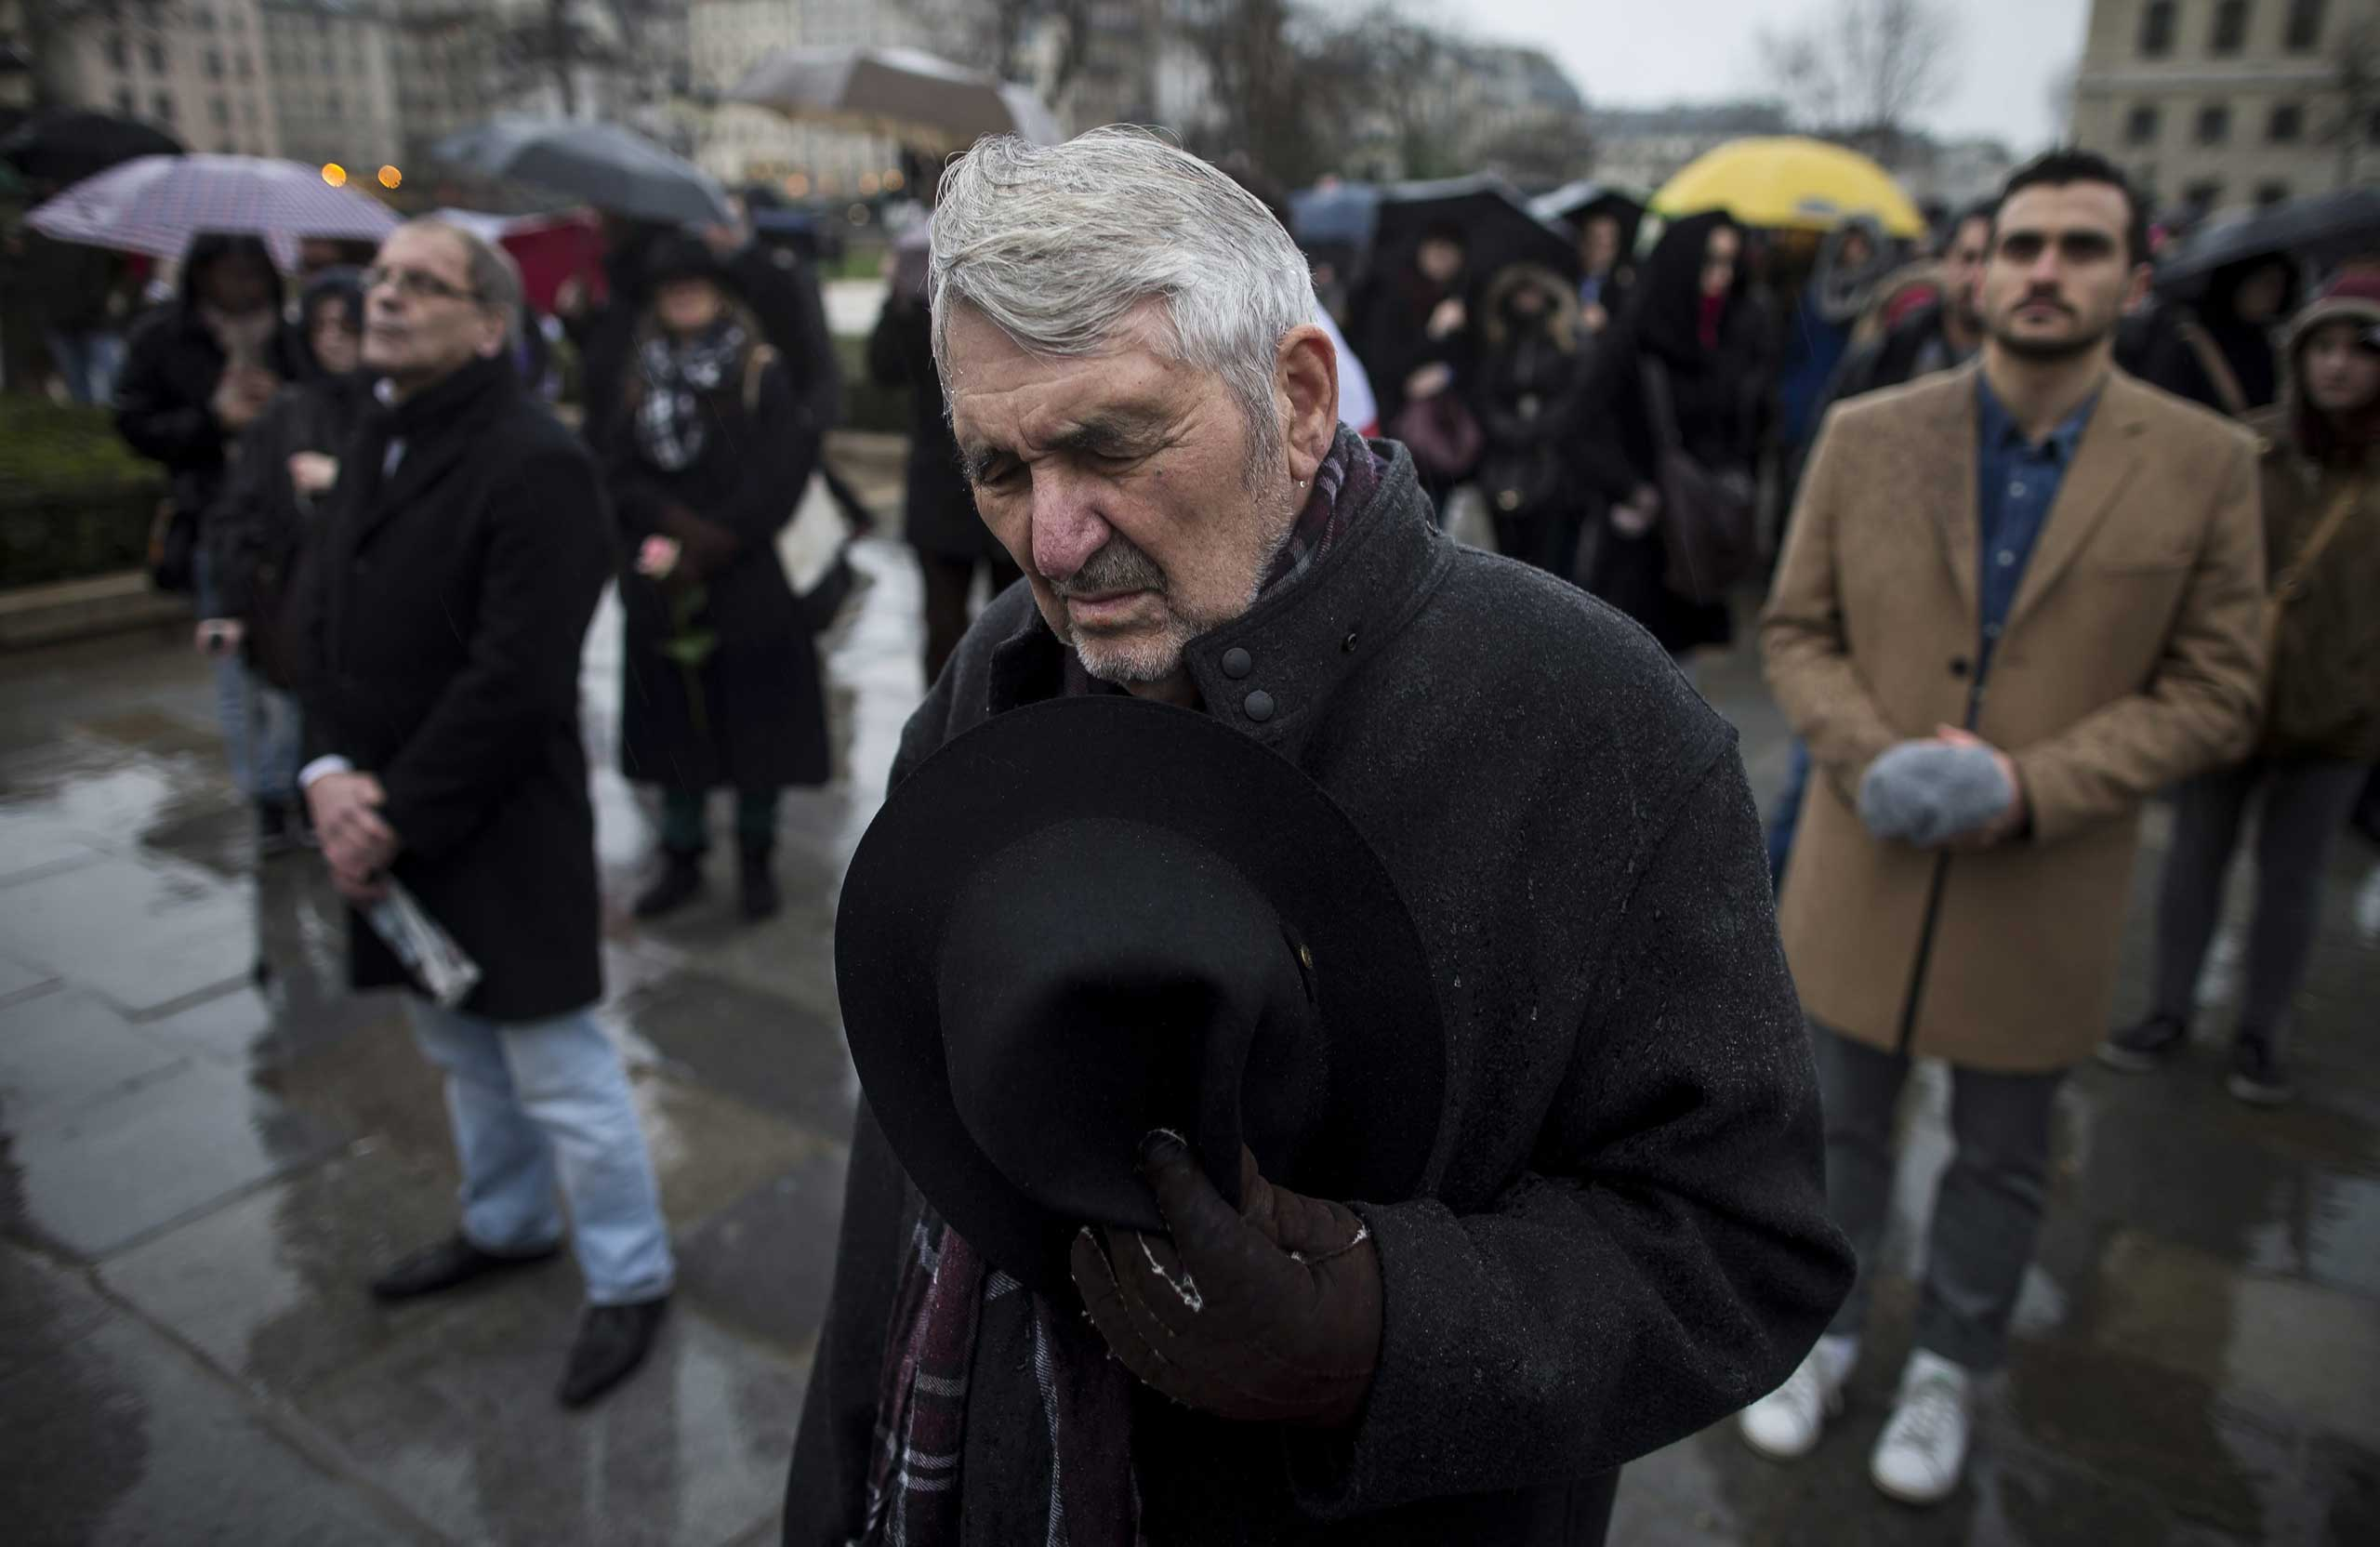 An older citizen removes his hat in a rain shower as he joins others gathered for a minute of silence in front of Notre Dame cathedral, Jan. 8, 2014.